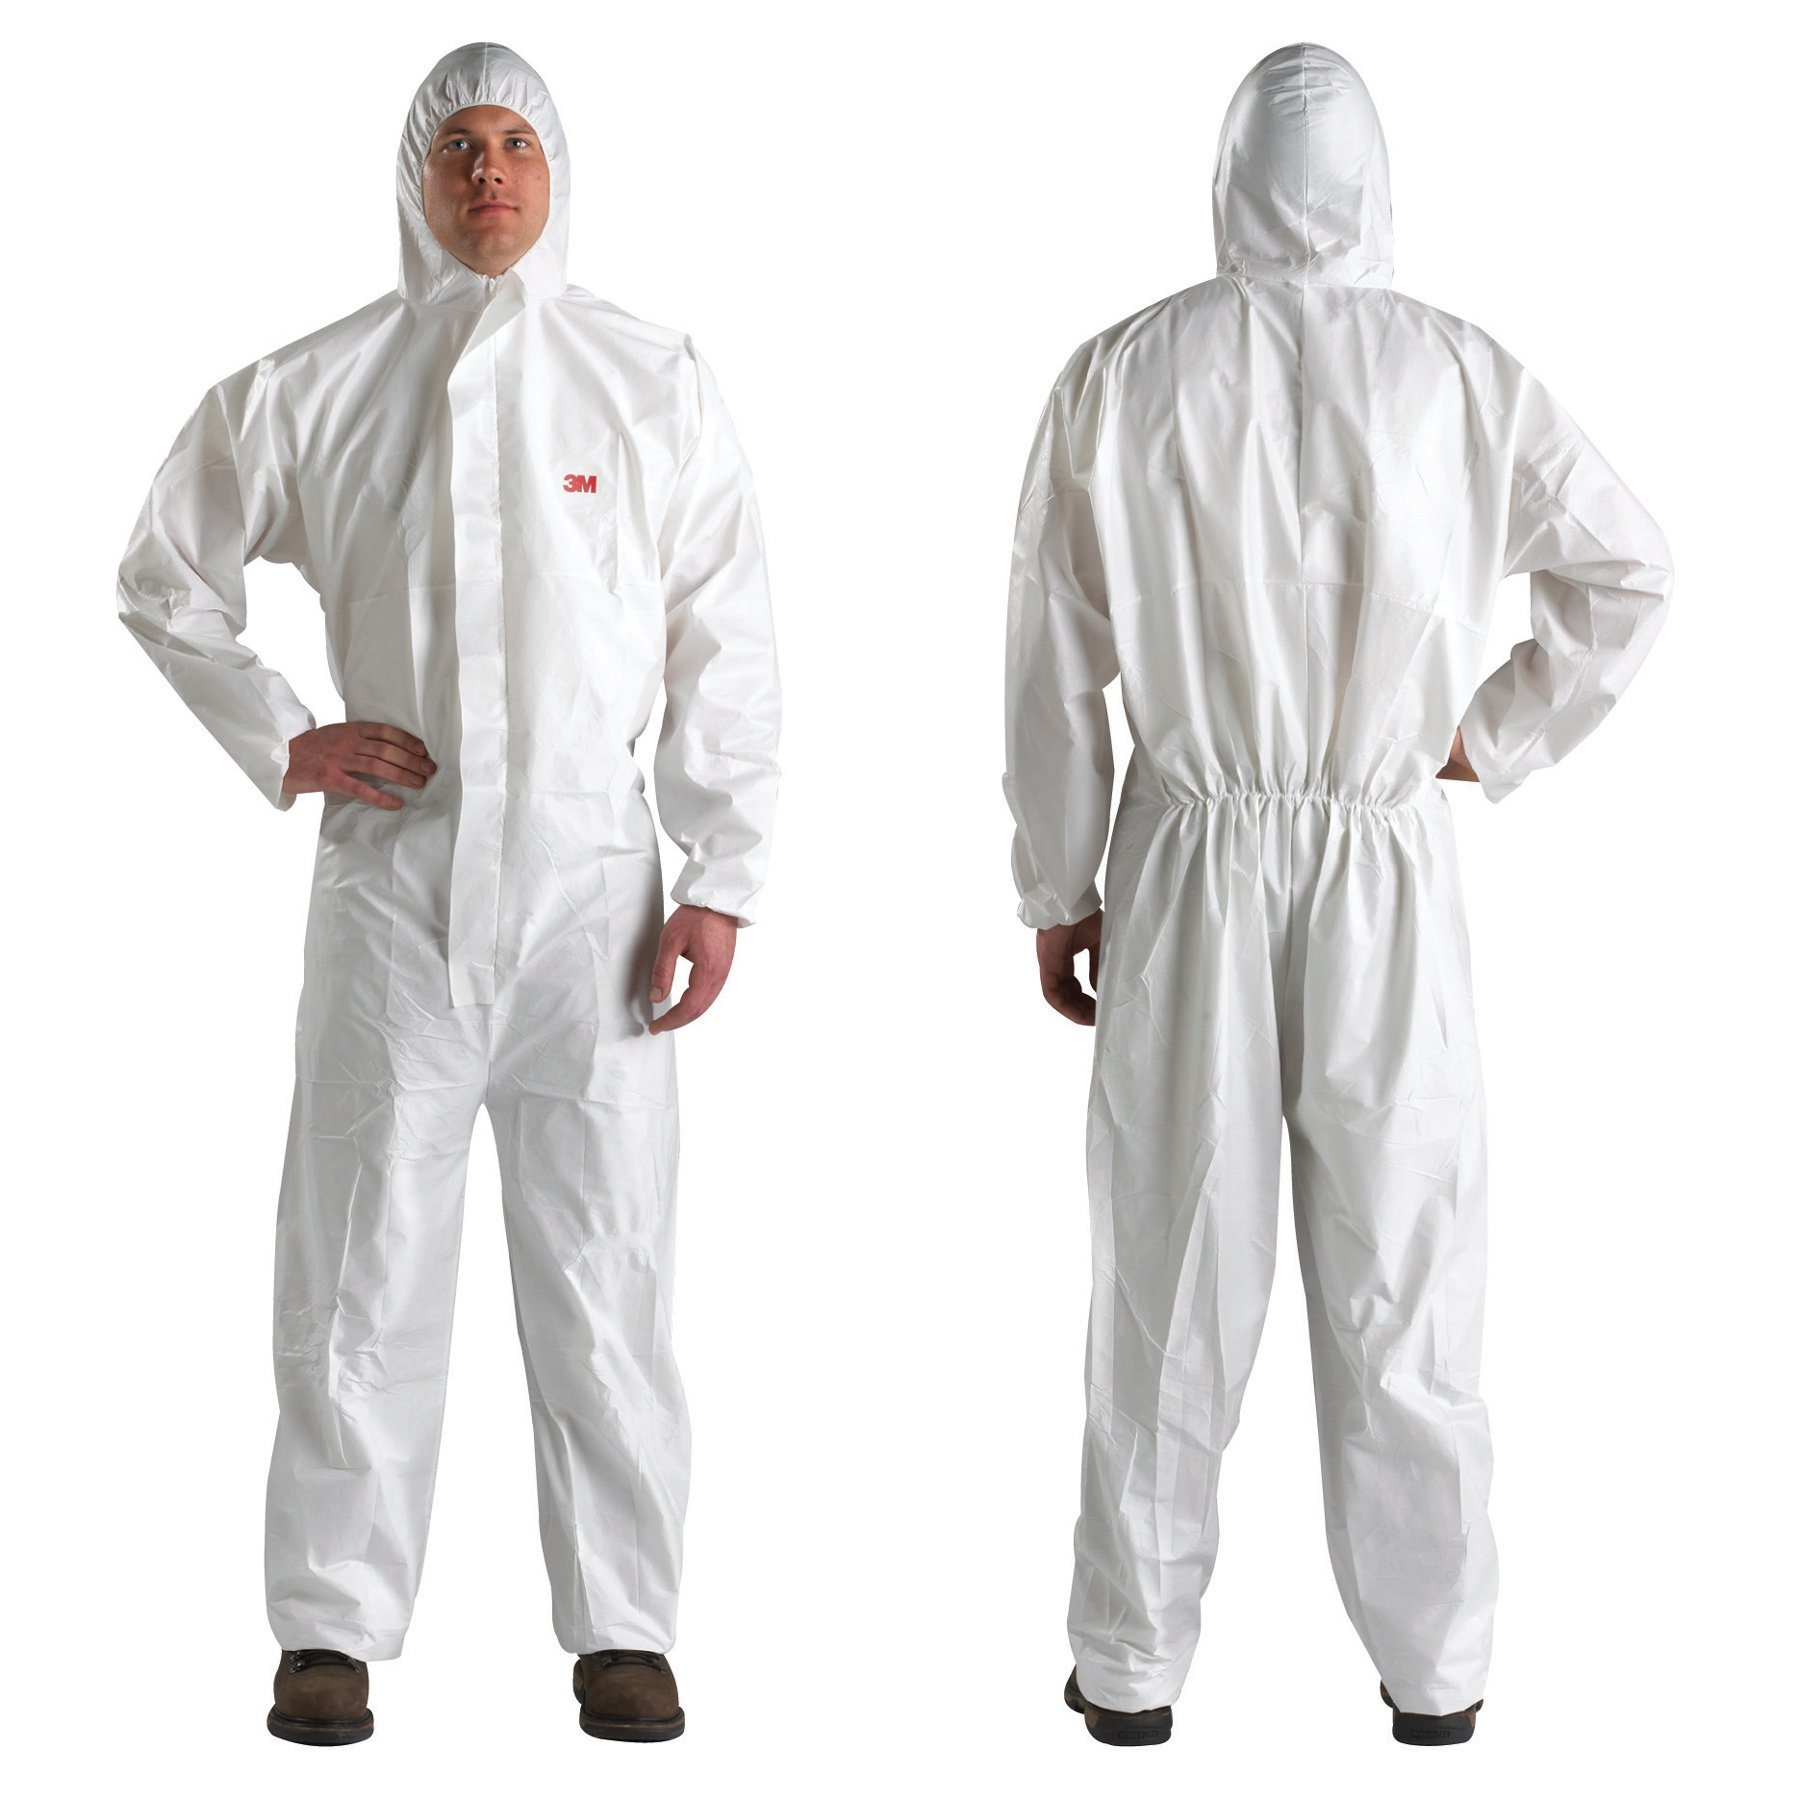 3M Disposable Protective Coverall 4510 (Large, As Shown)